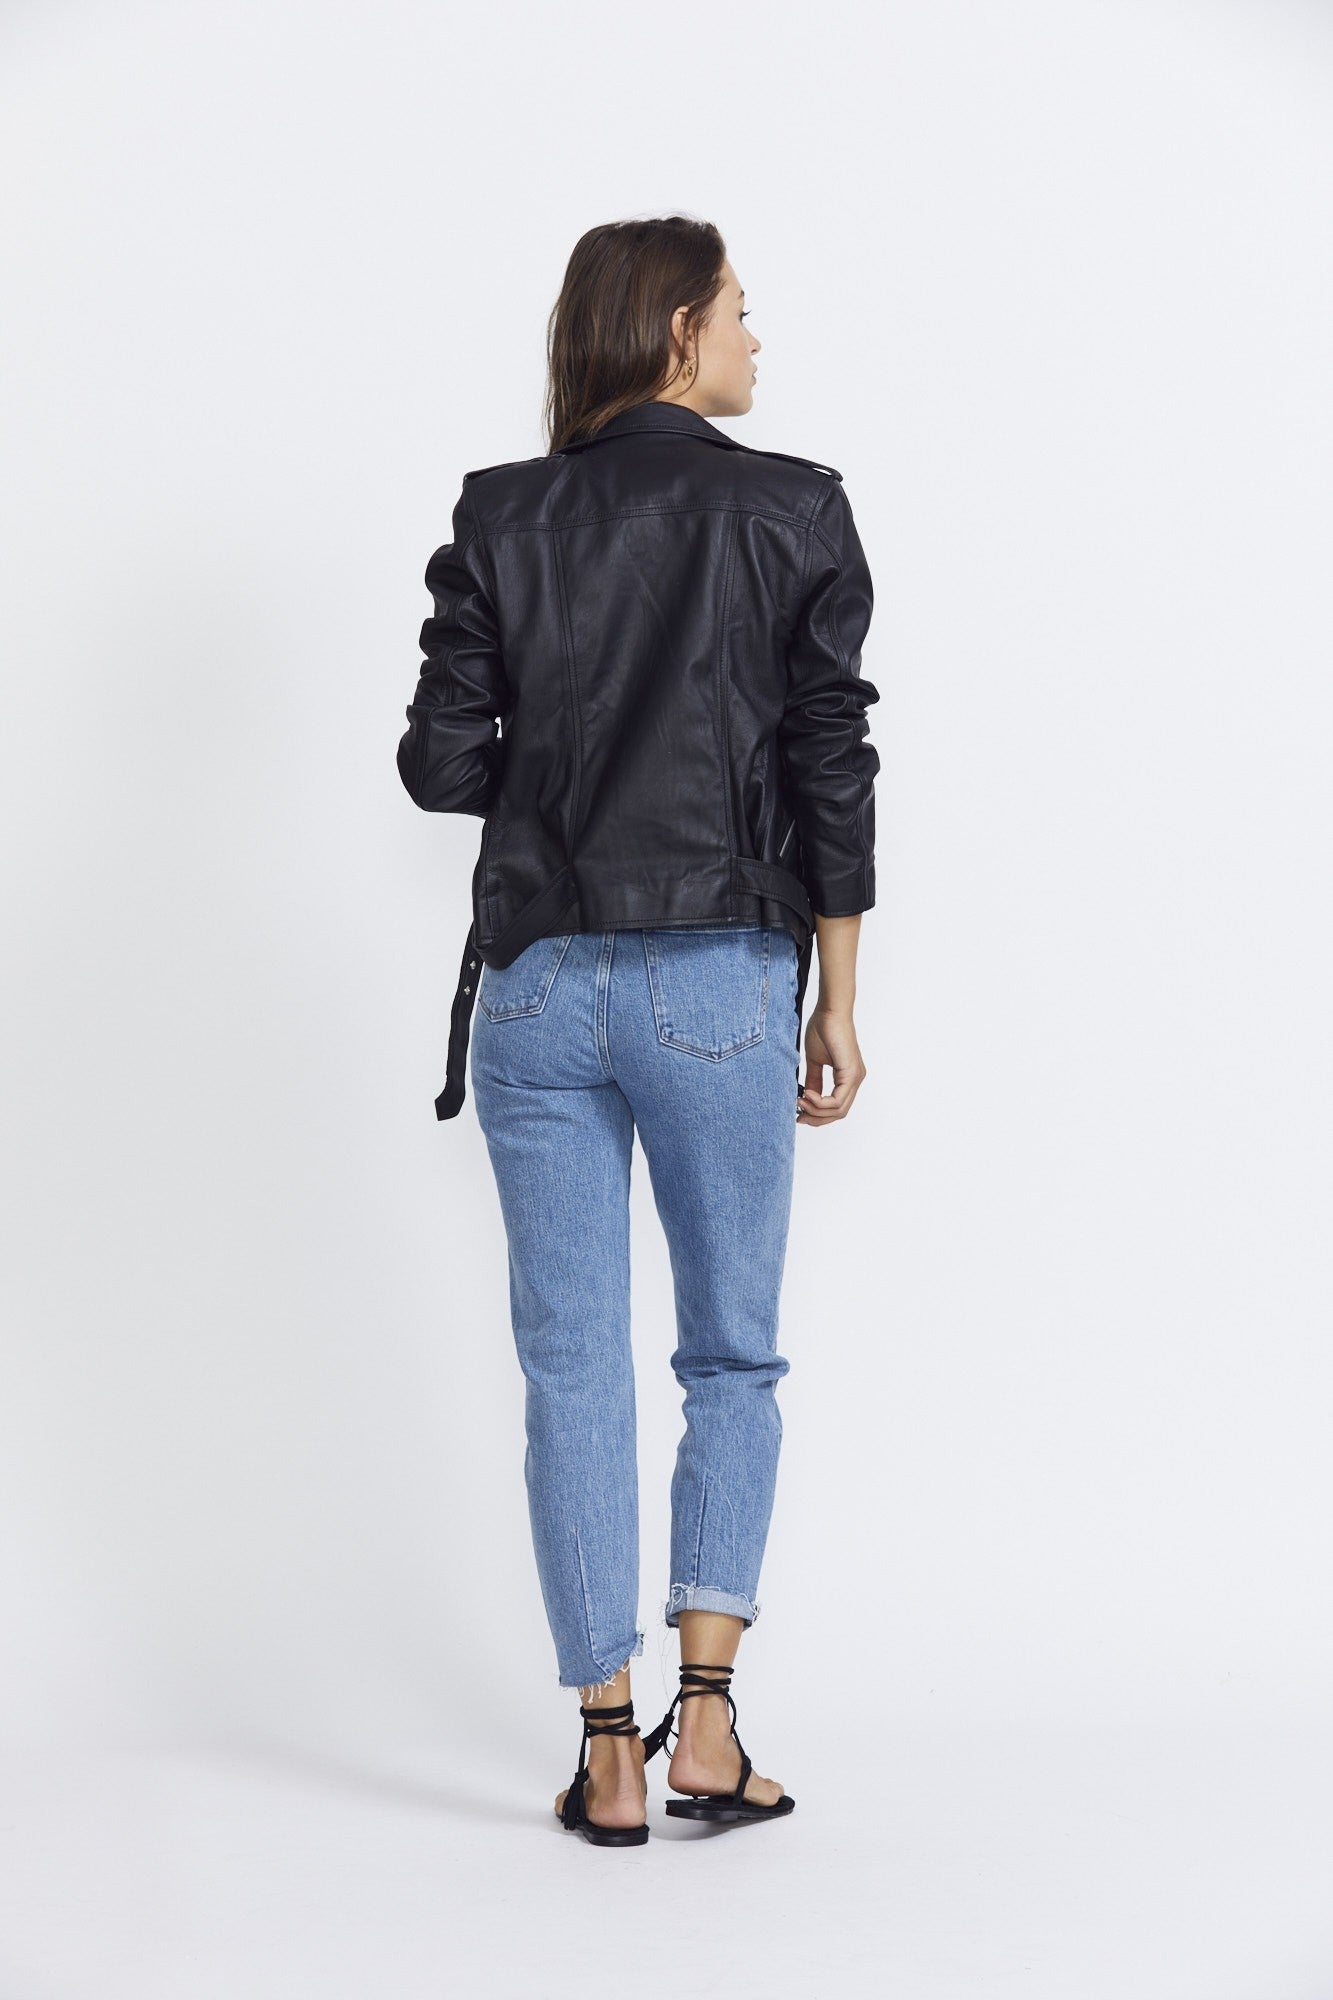 ÉSS THE LABEL Giselle Leather Biker Jacket- Black